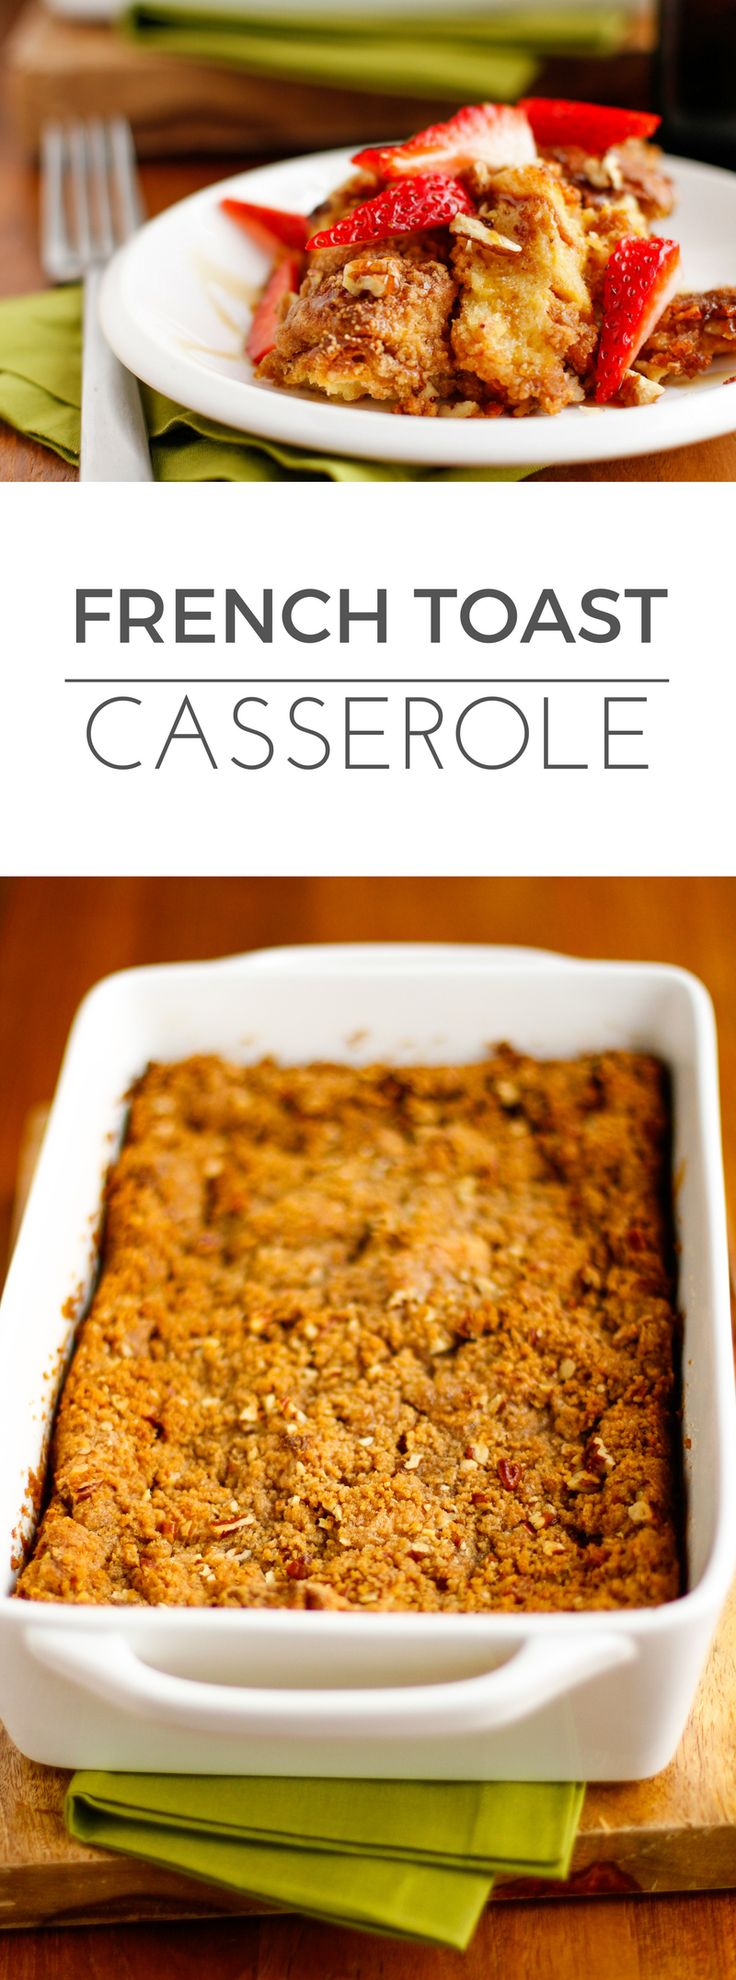 Easy French Toast Casserole -- a flavorful French toast casserole that doesn't require overnight refrigeration, topped with a delicious crunchy, caramelized cinnamon-pecan topping. Breakfast perfection! | via @unsophisticook on unsophisticook.com